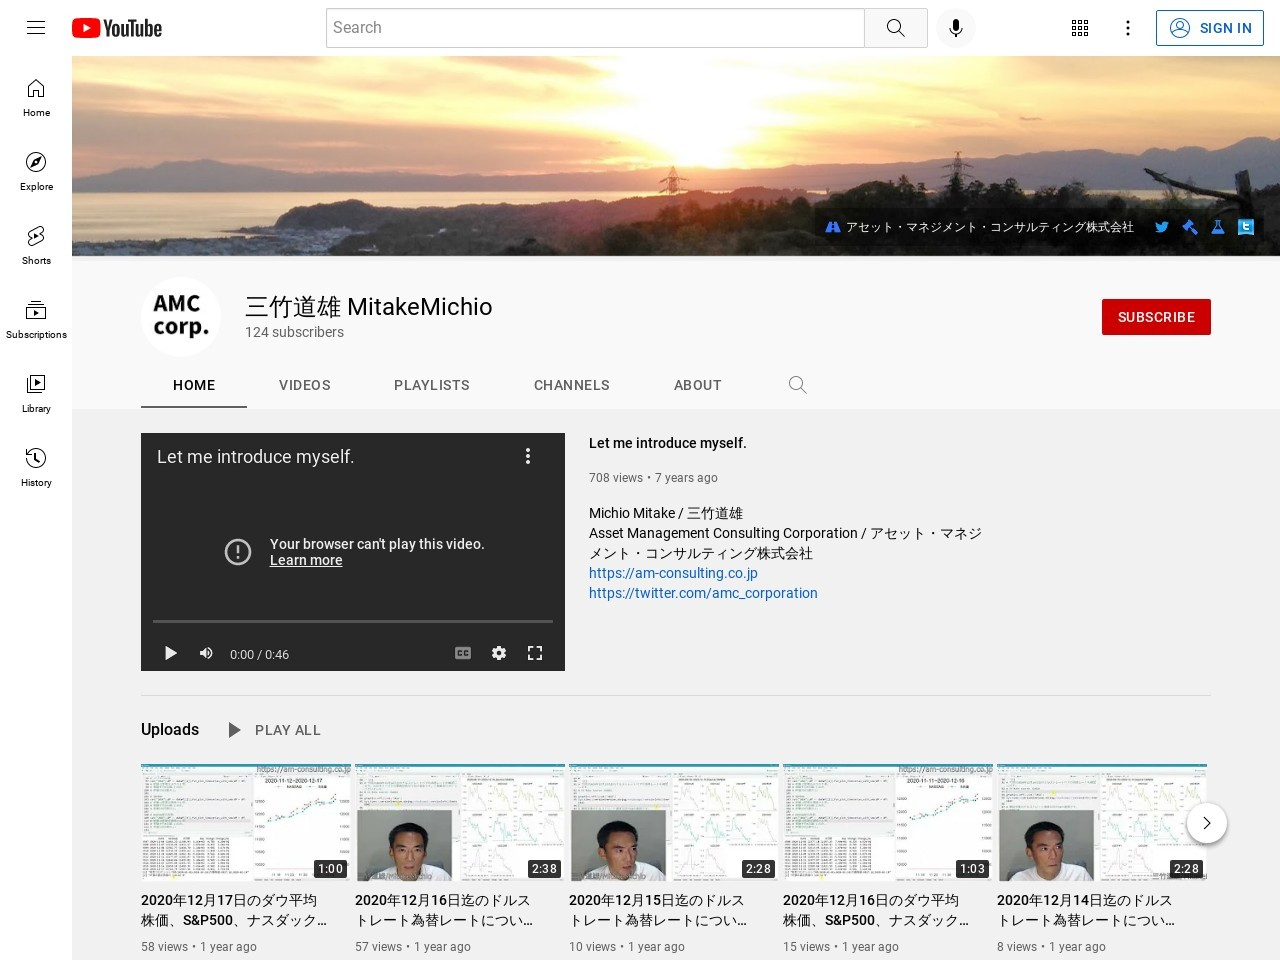 https://www.youtube.com/user/michiomitake